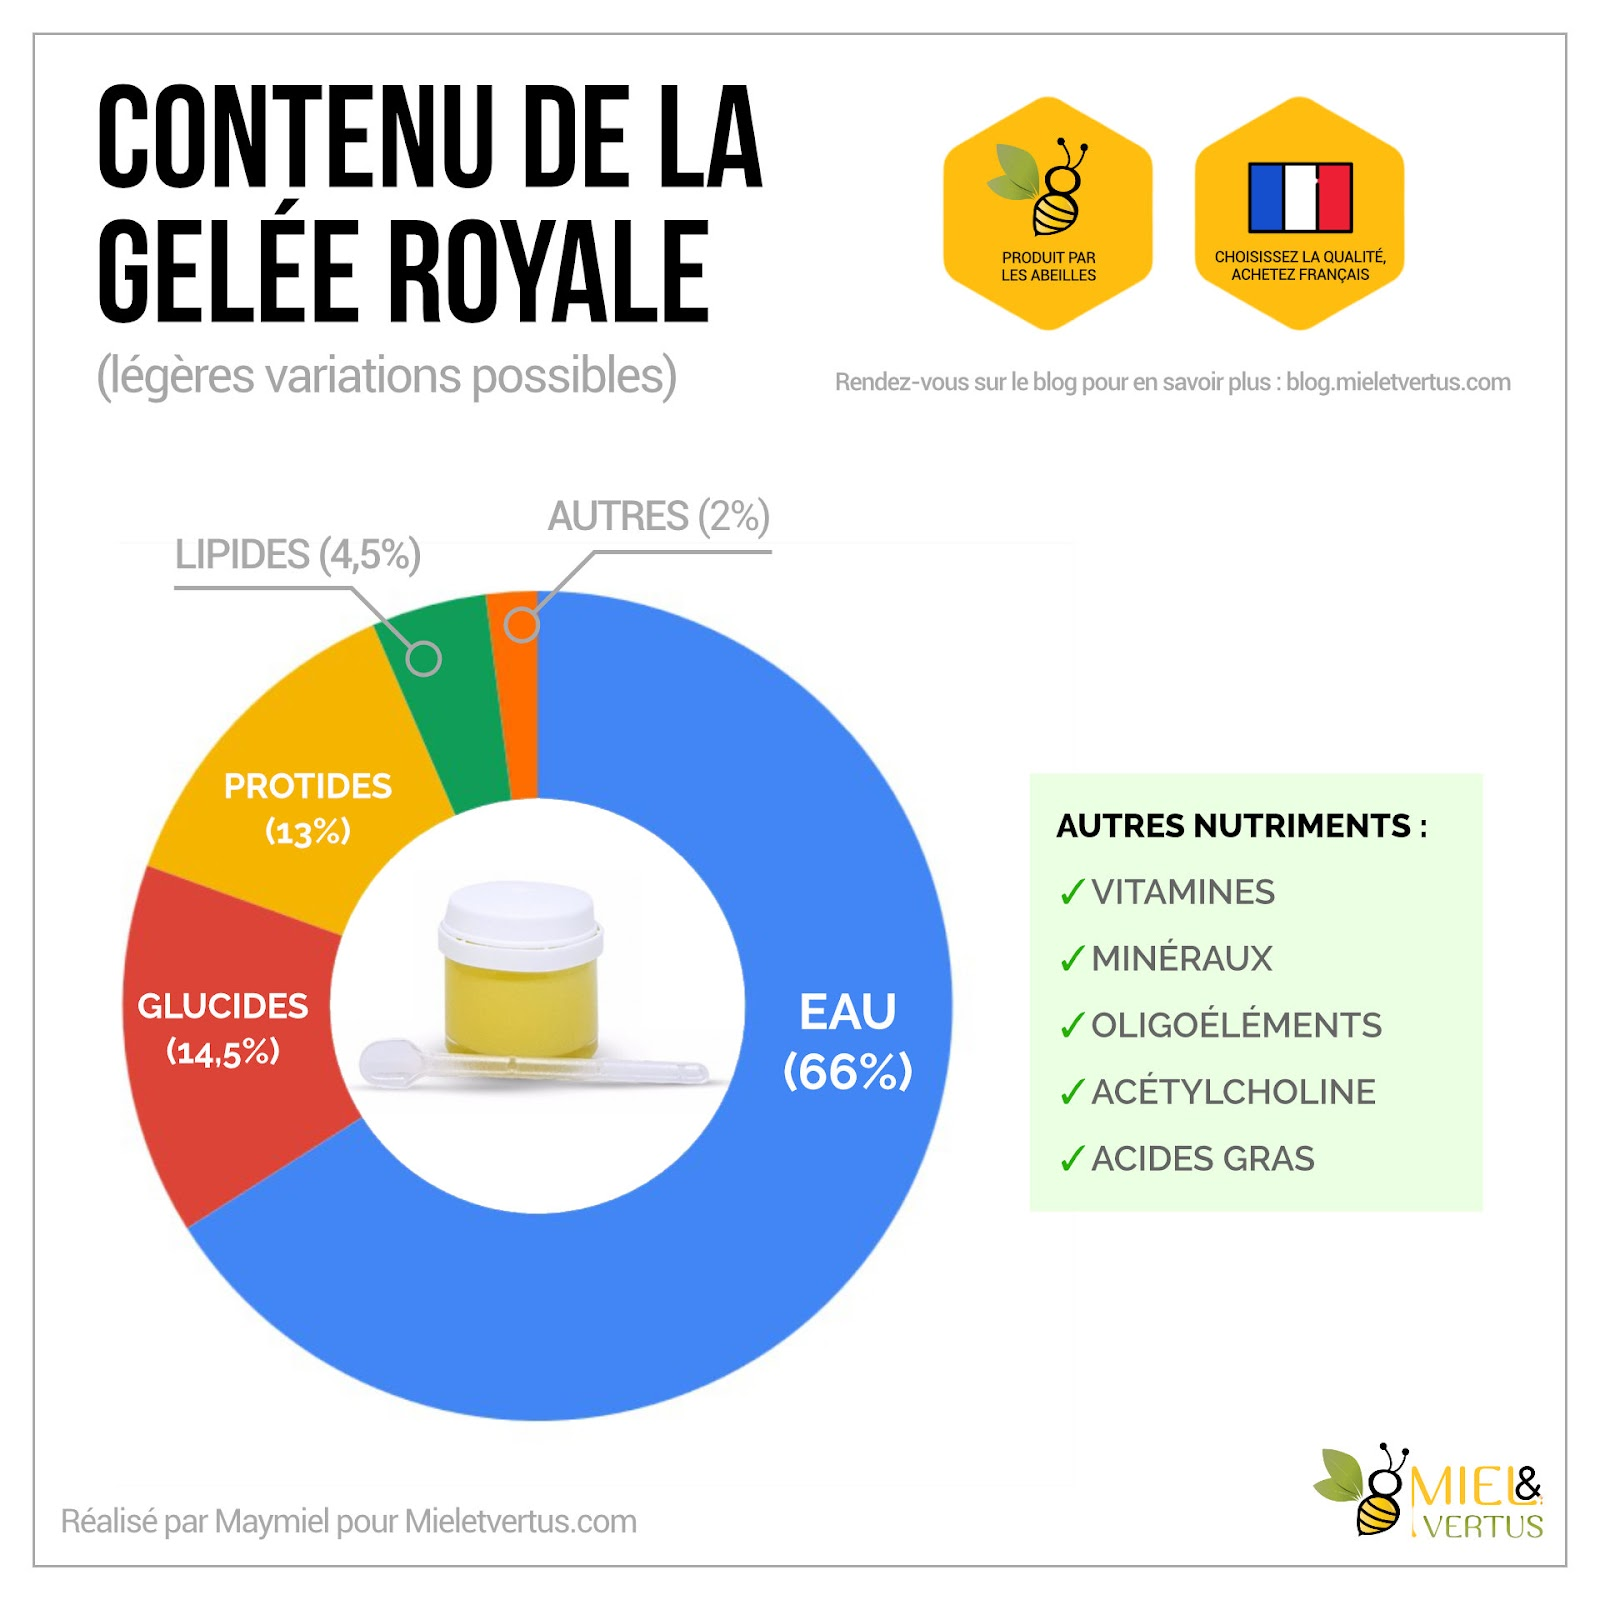 Gelée royale : Bienfaits, Cure, Production & Conservation [Guide complet] 1